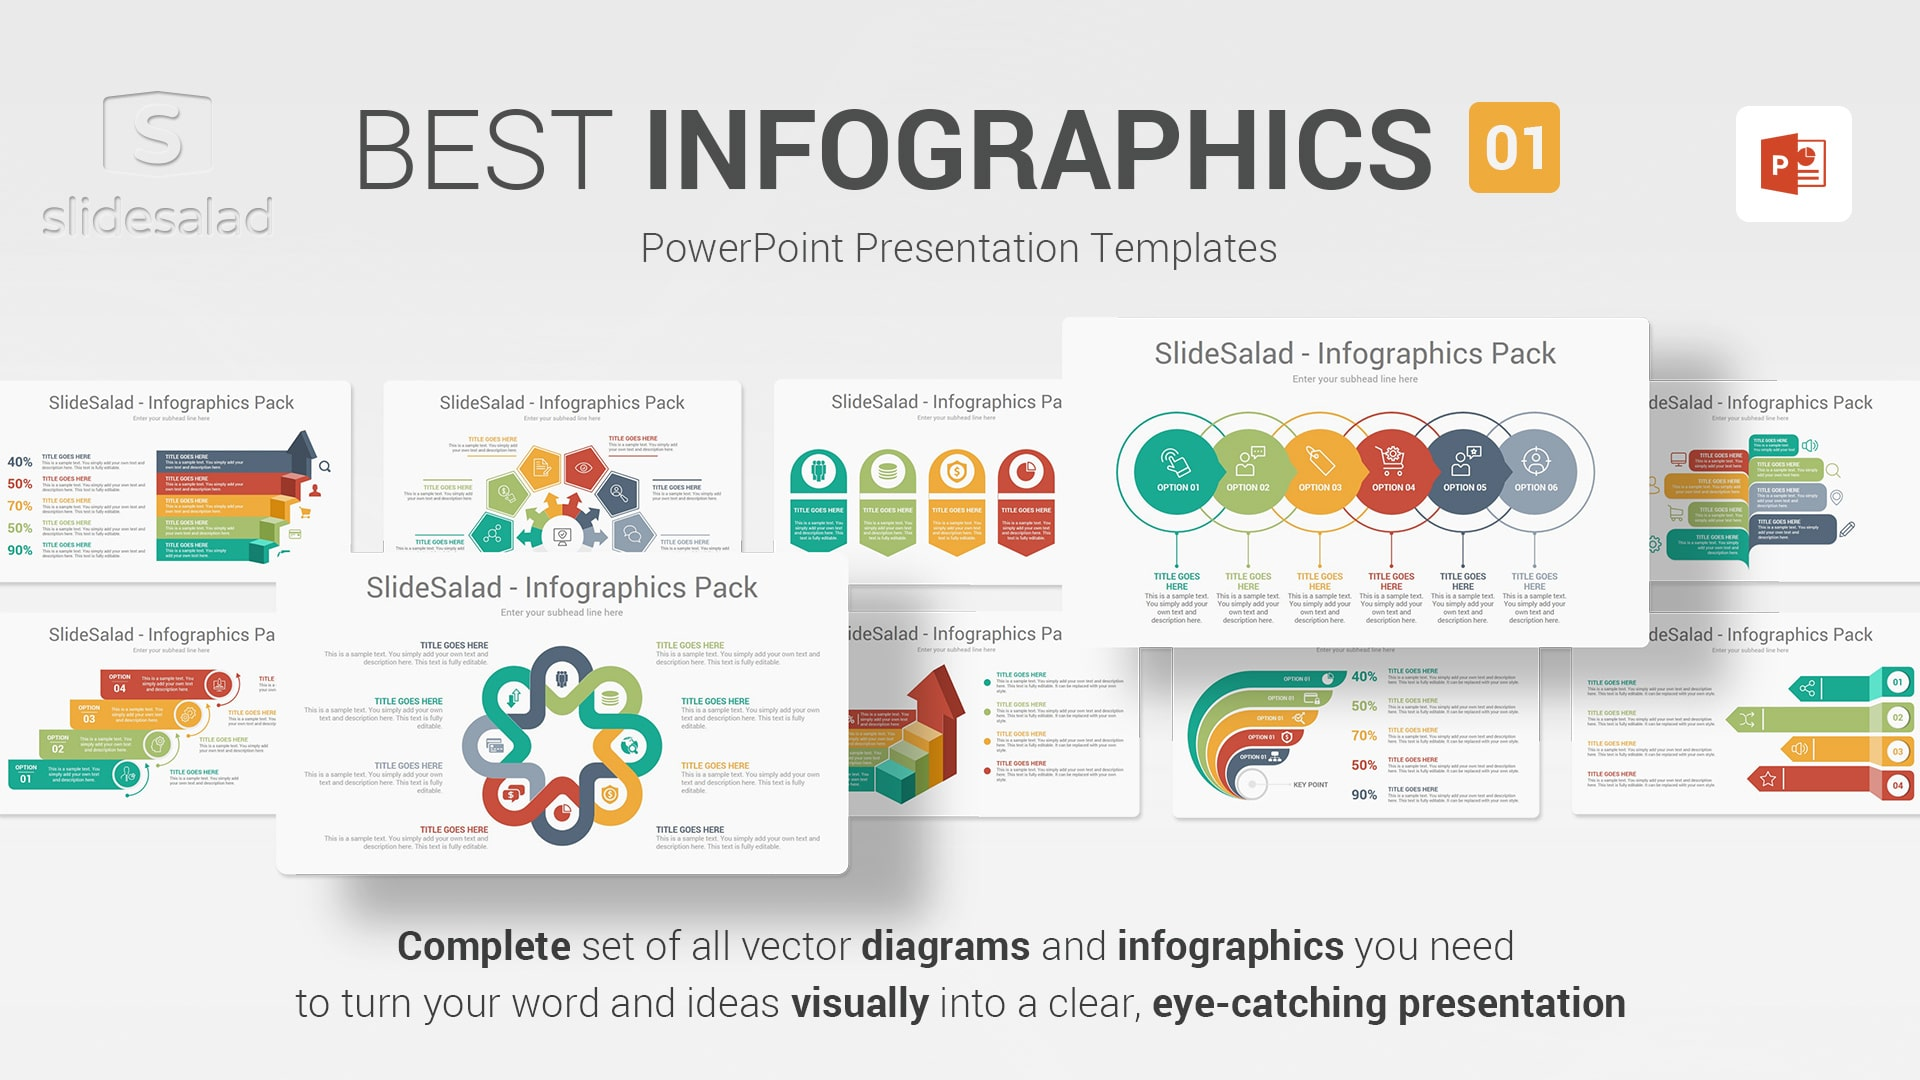 Best Infographics Designs PowerPoint Template Pack 01 - Top Webinar Illustration PowerPoint Templates